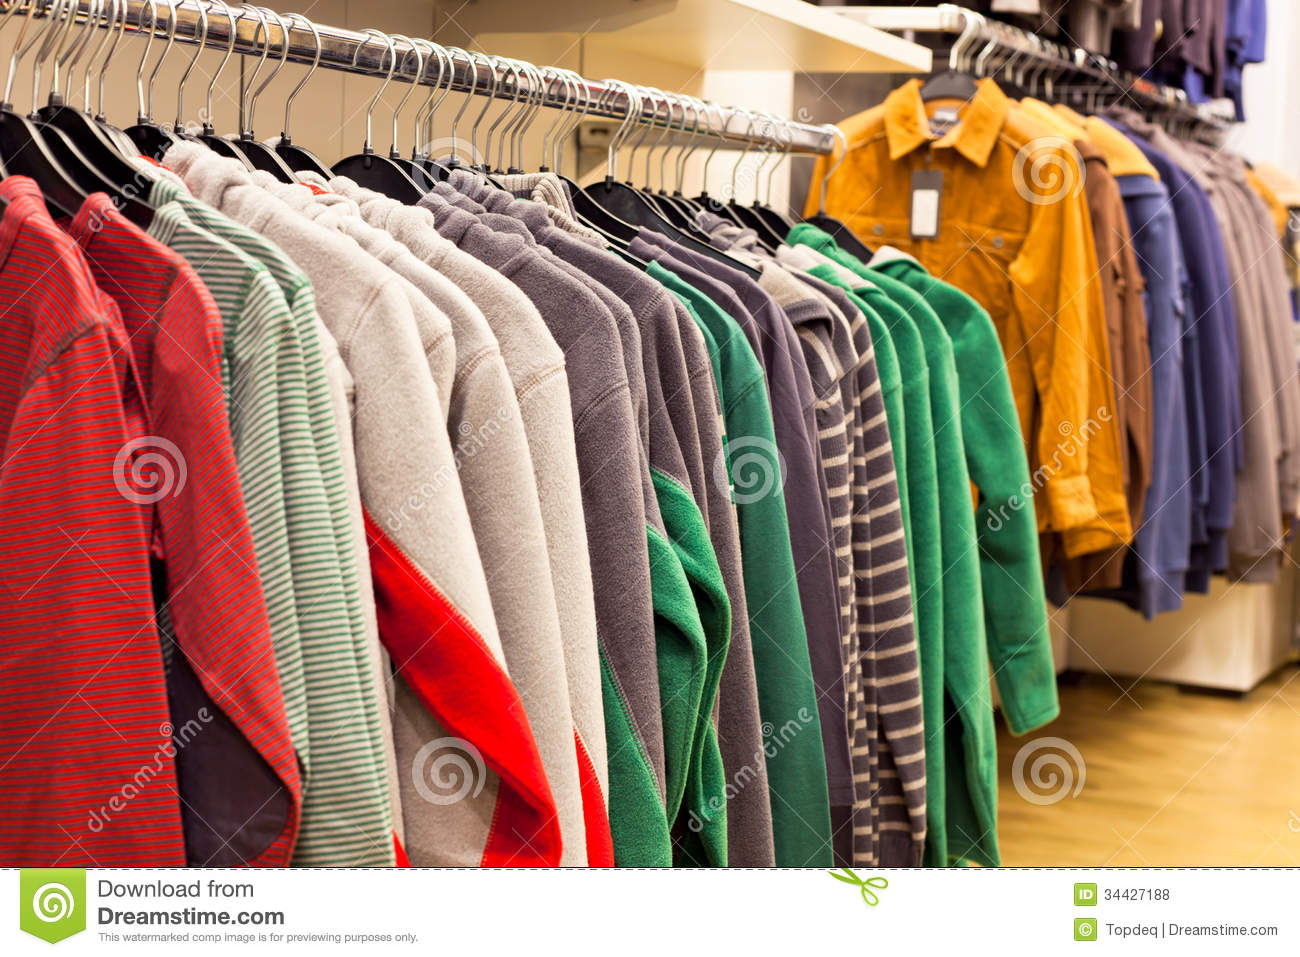 84b33fe200 Men Clothing In Fashion Store Stock Photo - Image of clothing, rail ...